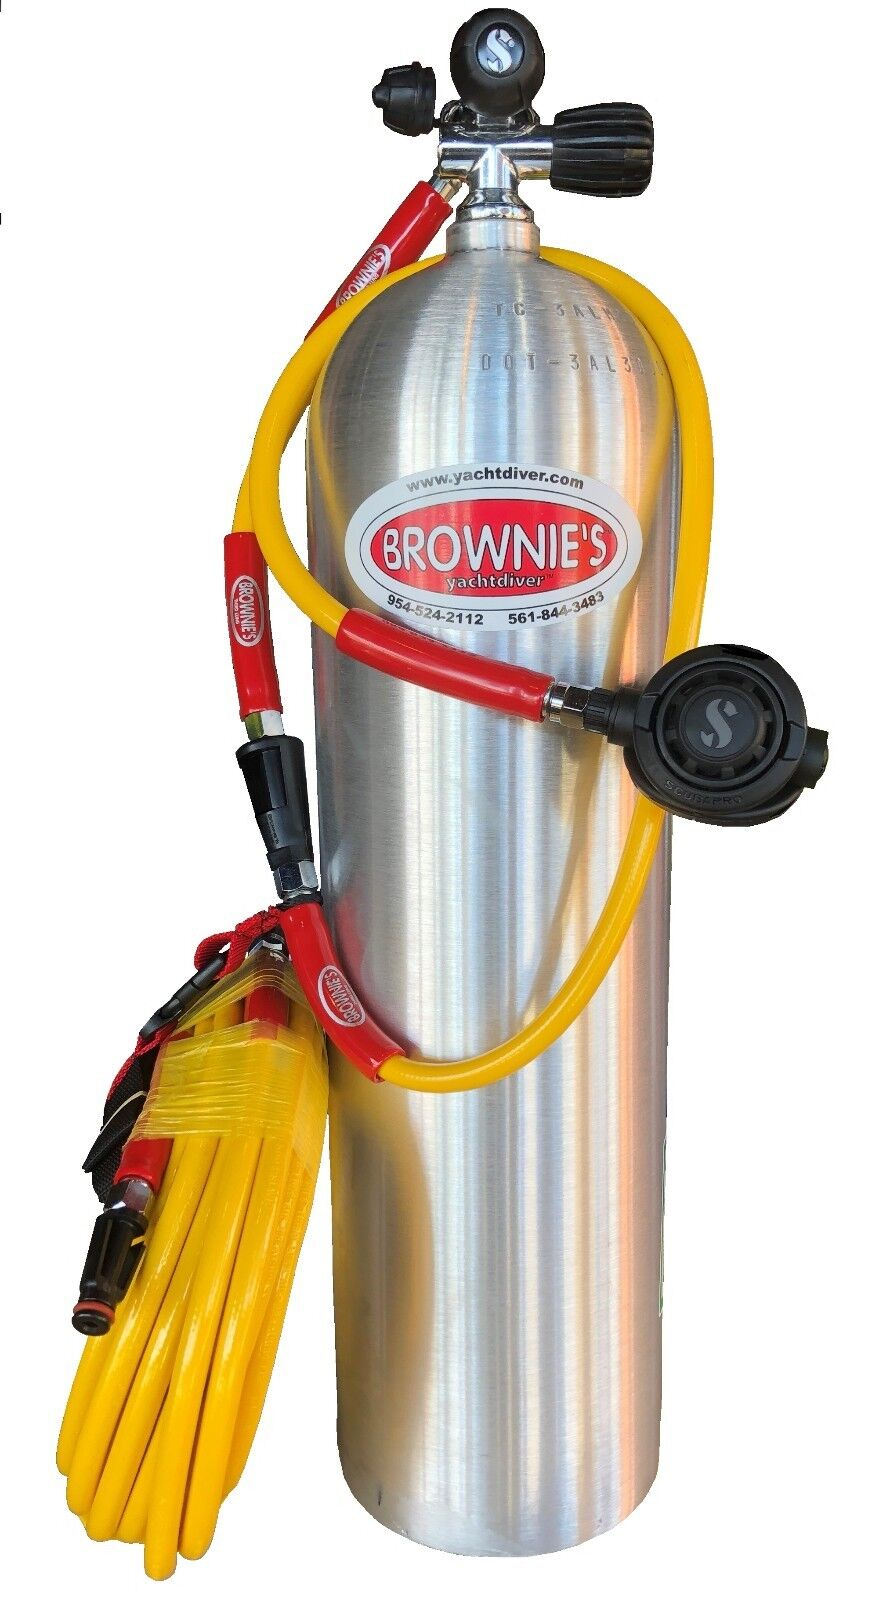 Brownie's Third Lung Kayak diving kit - 60ft hose, tank , and 1st 2nd stage reg.